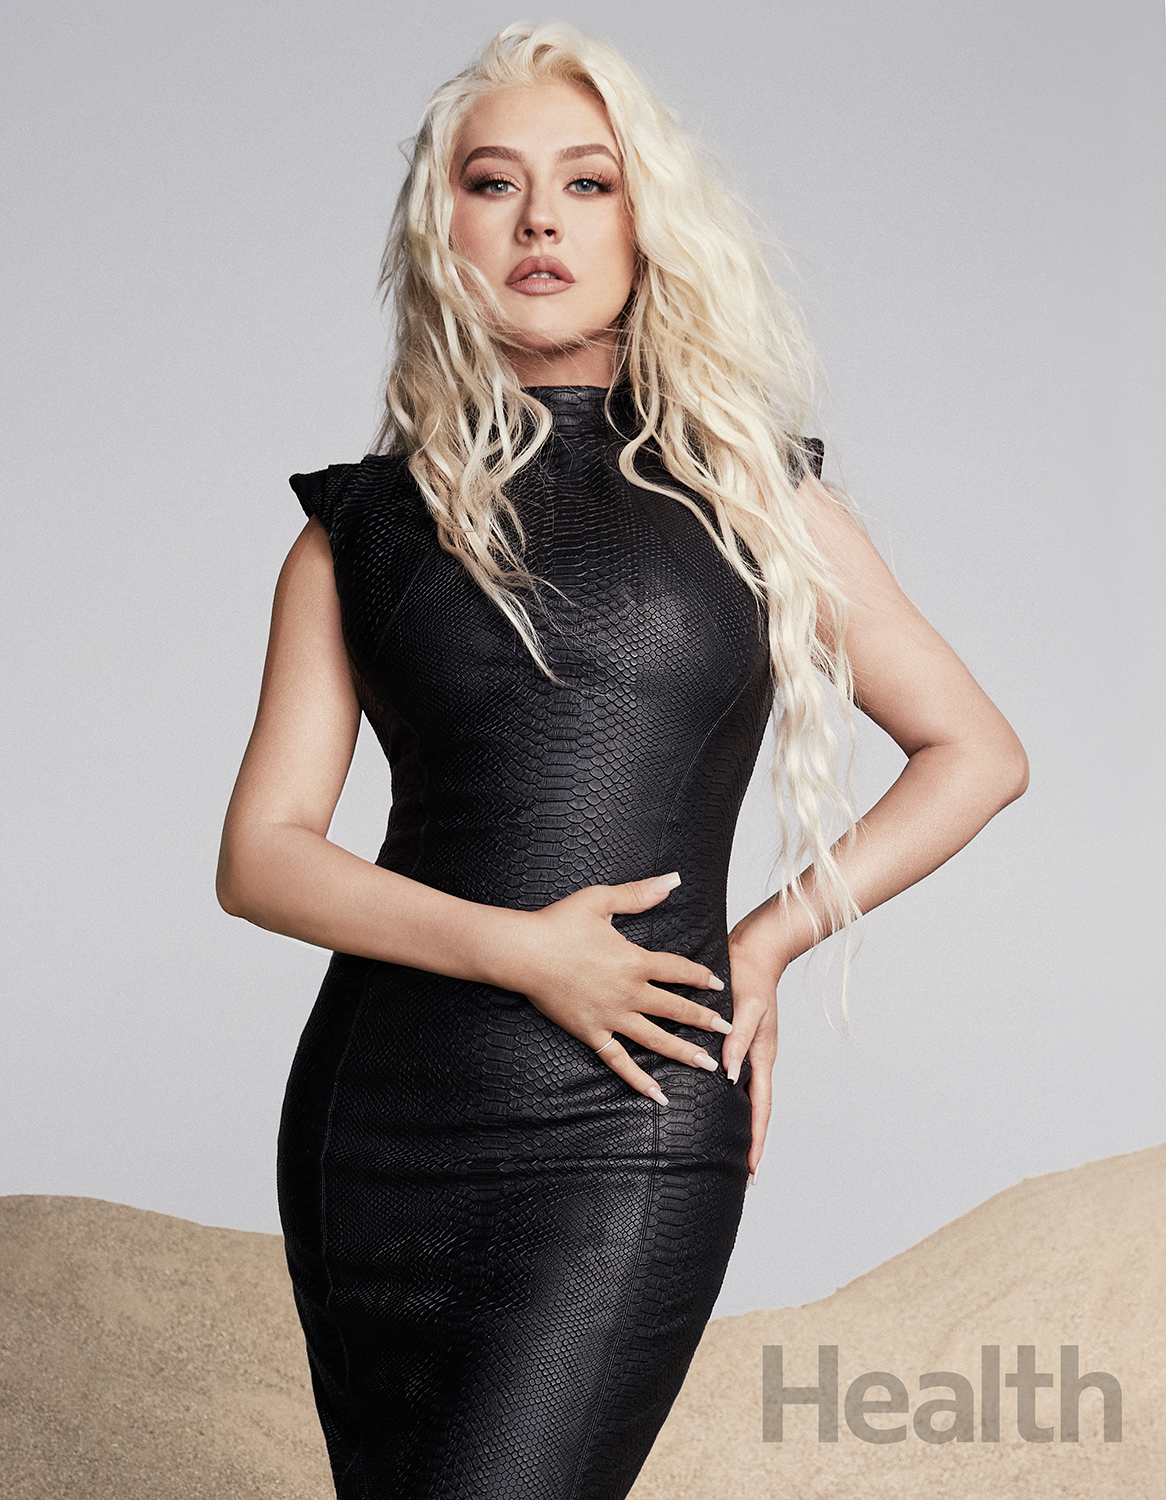 Christina Aguilera Health cover